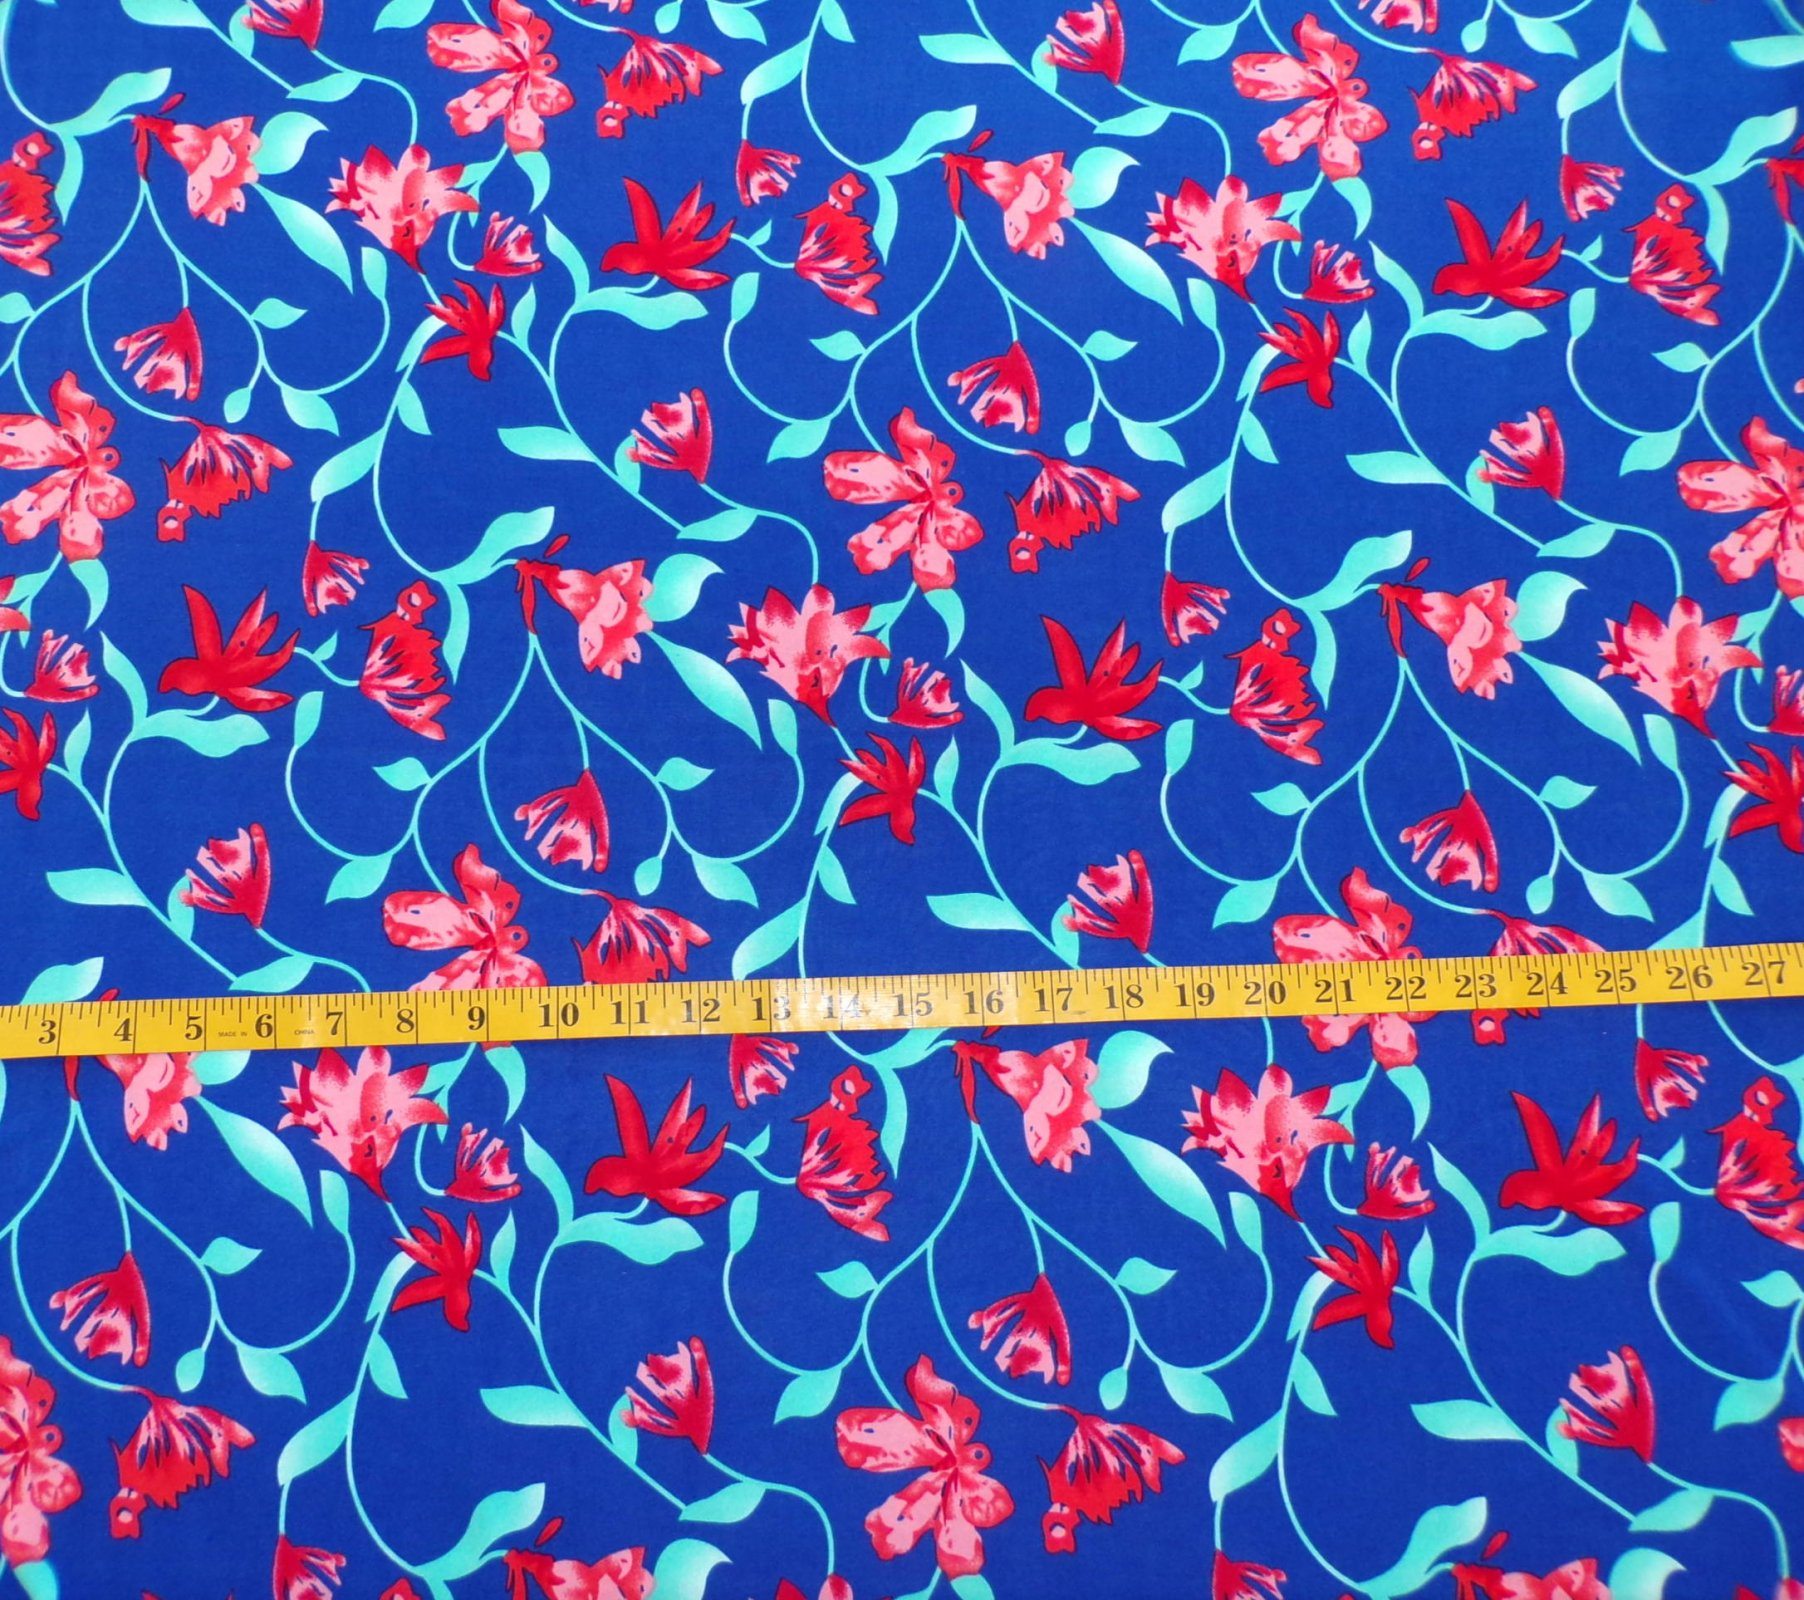 ITY Jersey - Blue Red and Aqua Floral